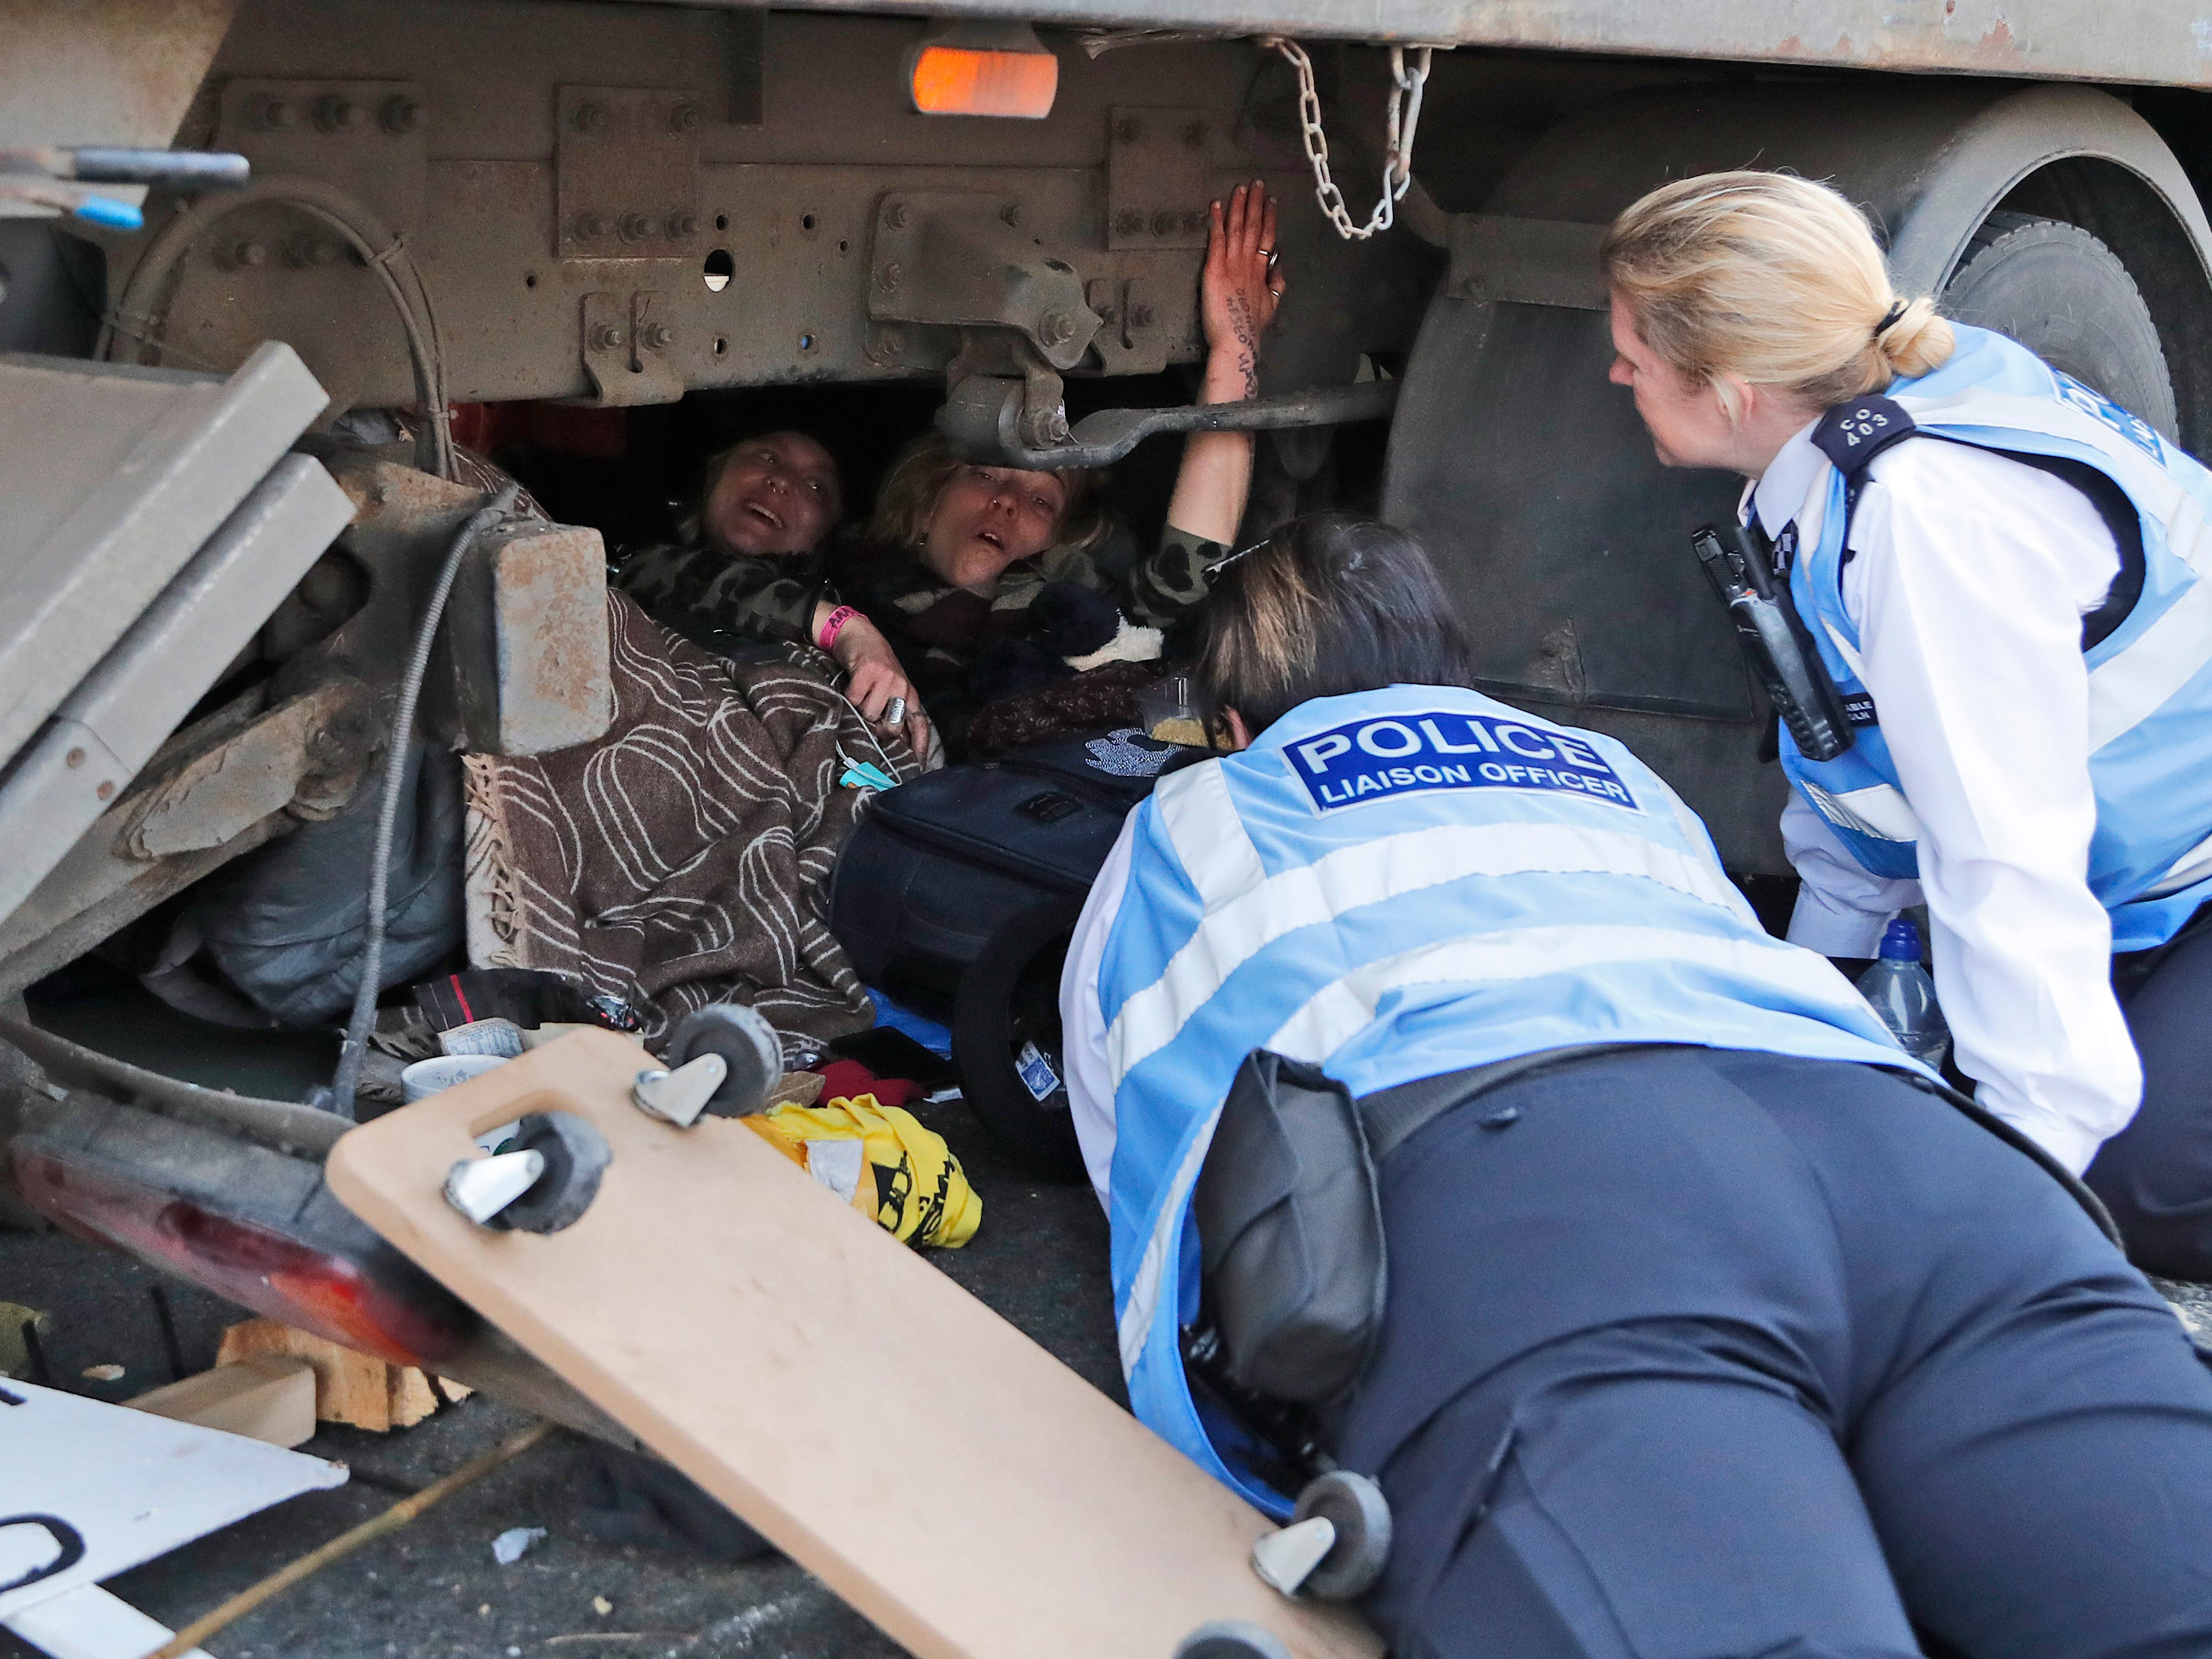 Police officers speak to protesters under a lorry, during a civic disobedience event to block Waterloo Bridge in London, Wednesday, April 17, 2019. The group Extinction Rebellion is calling for a week of civil disobedience against what it says is the failure to tackle the causes of climate change.